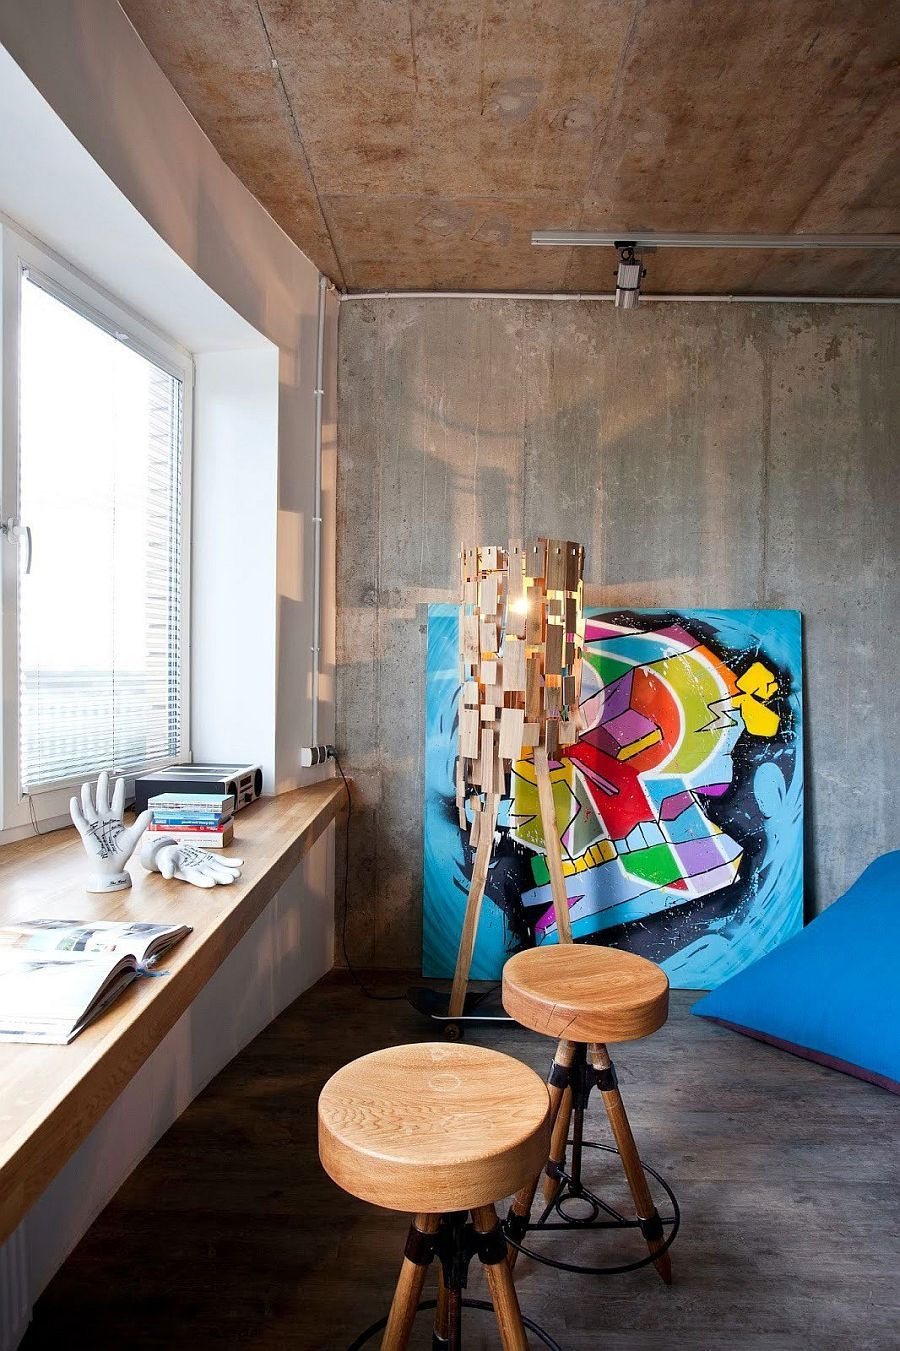 Gorgeous floor lamp and colorful art work add character to the interior decoist